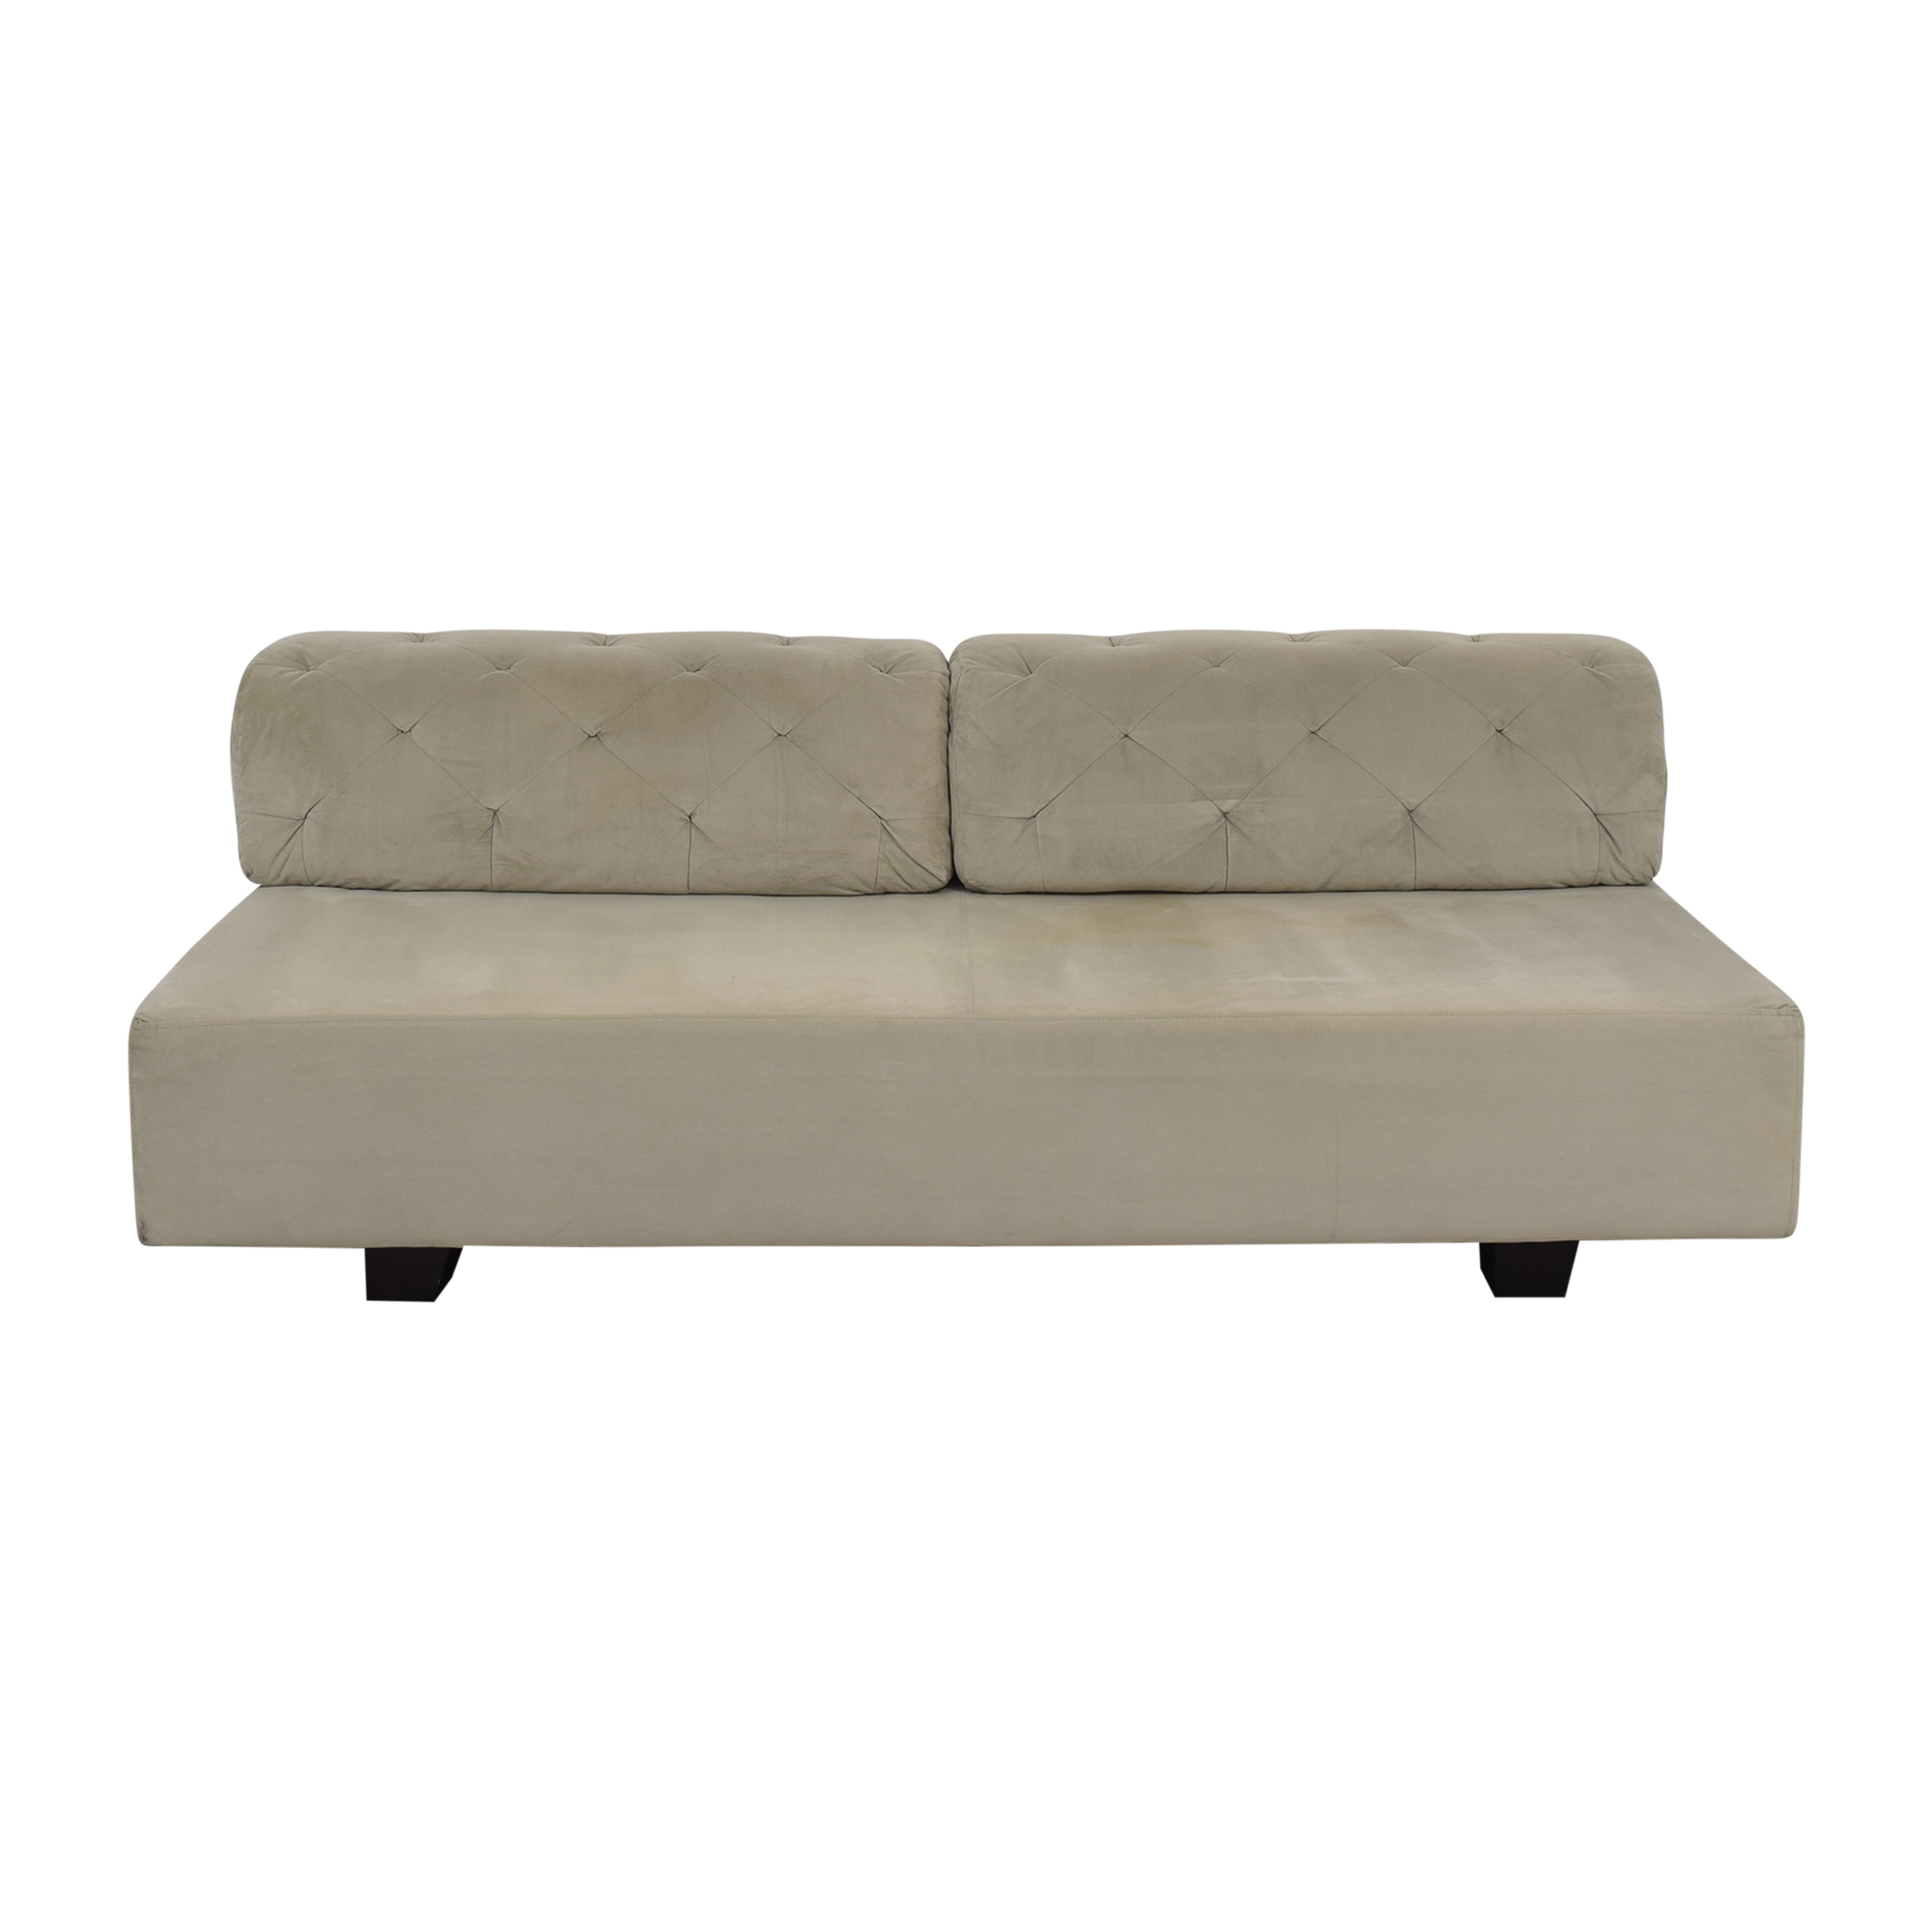 buy West Elm Tufted Tillary Sofa West Elm Classic Sofas